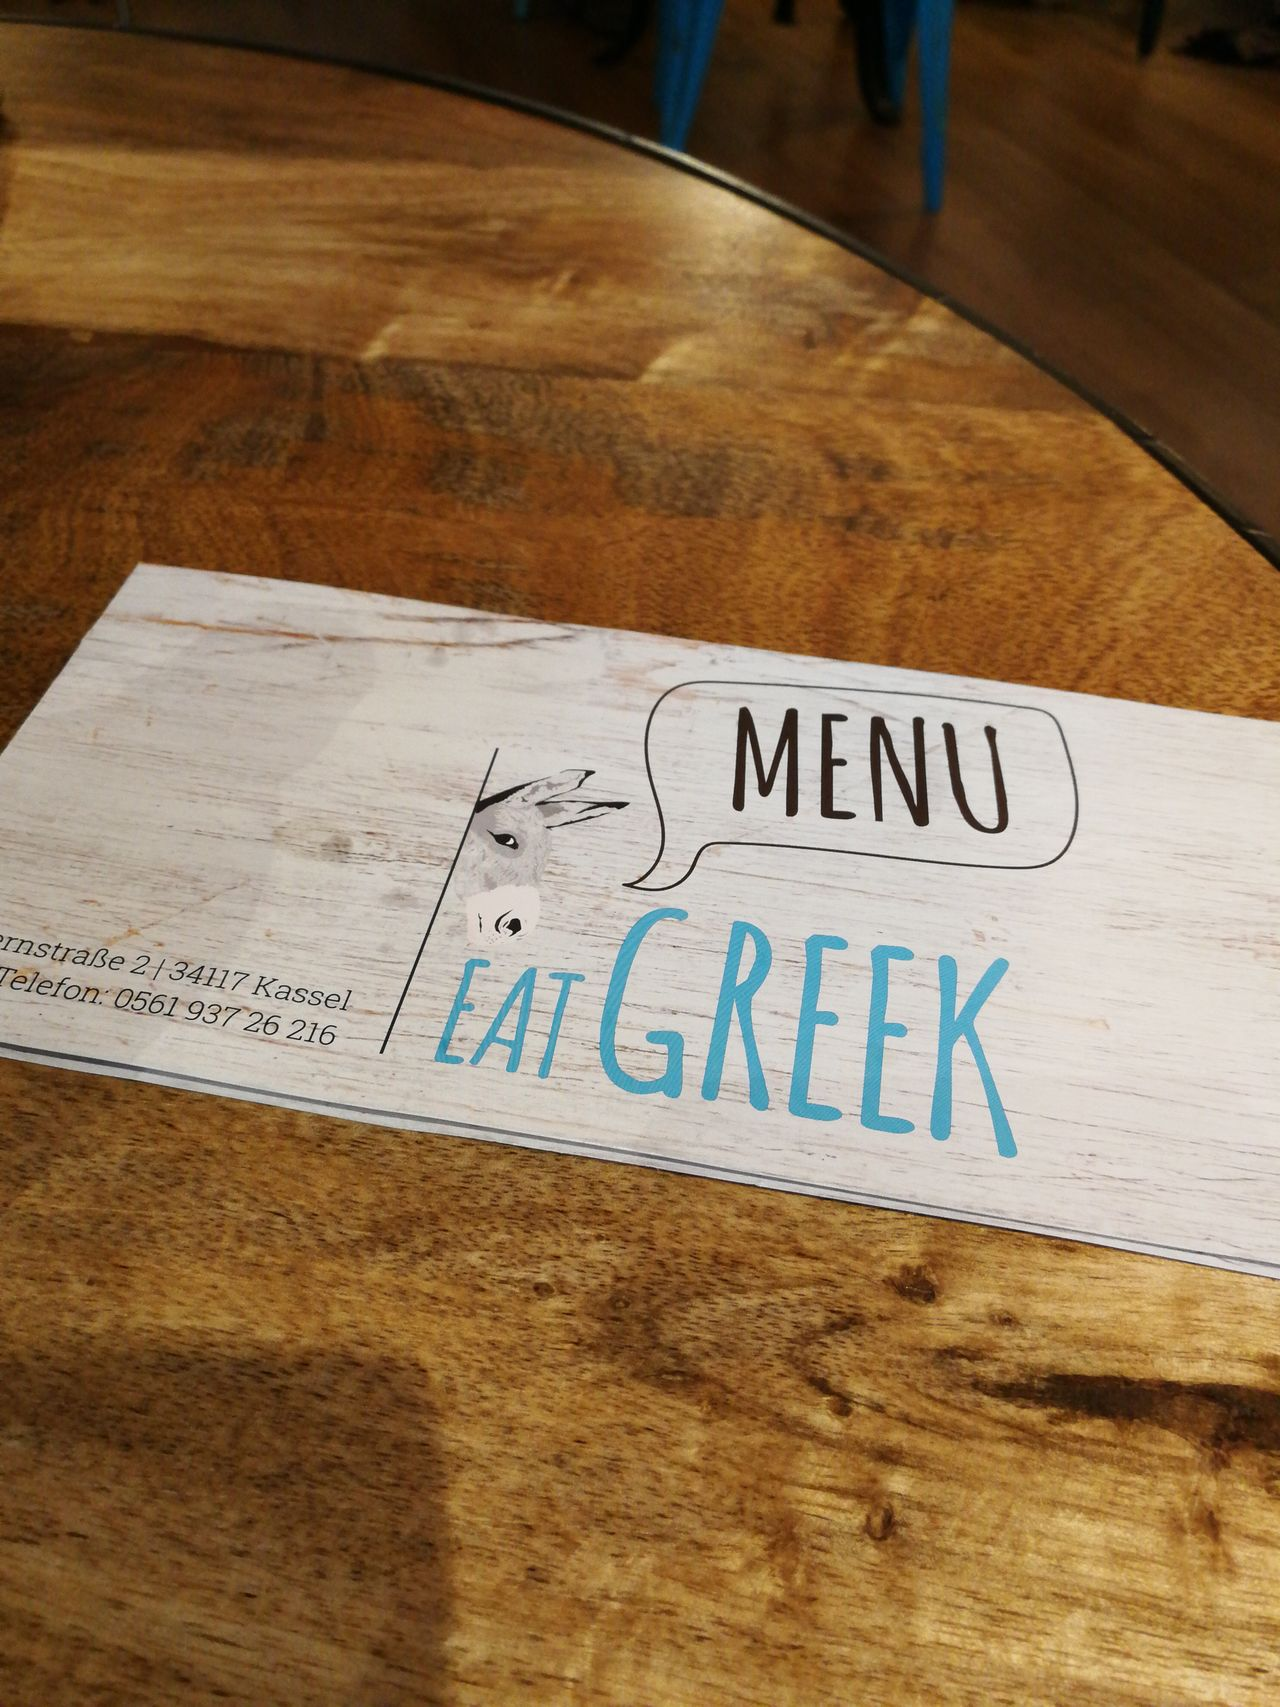 A photo of Eat Greek